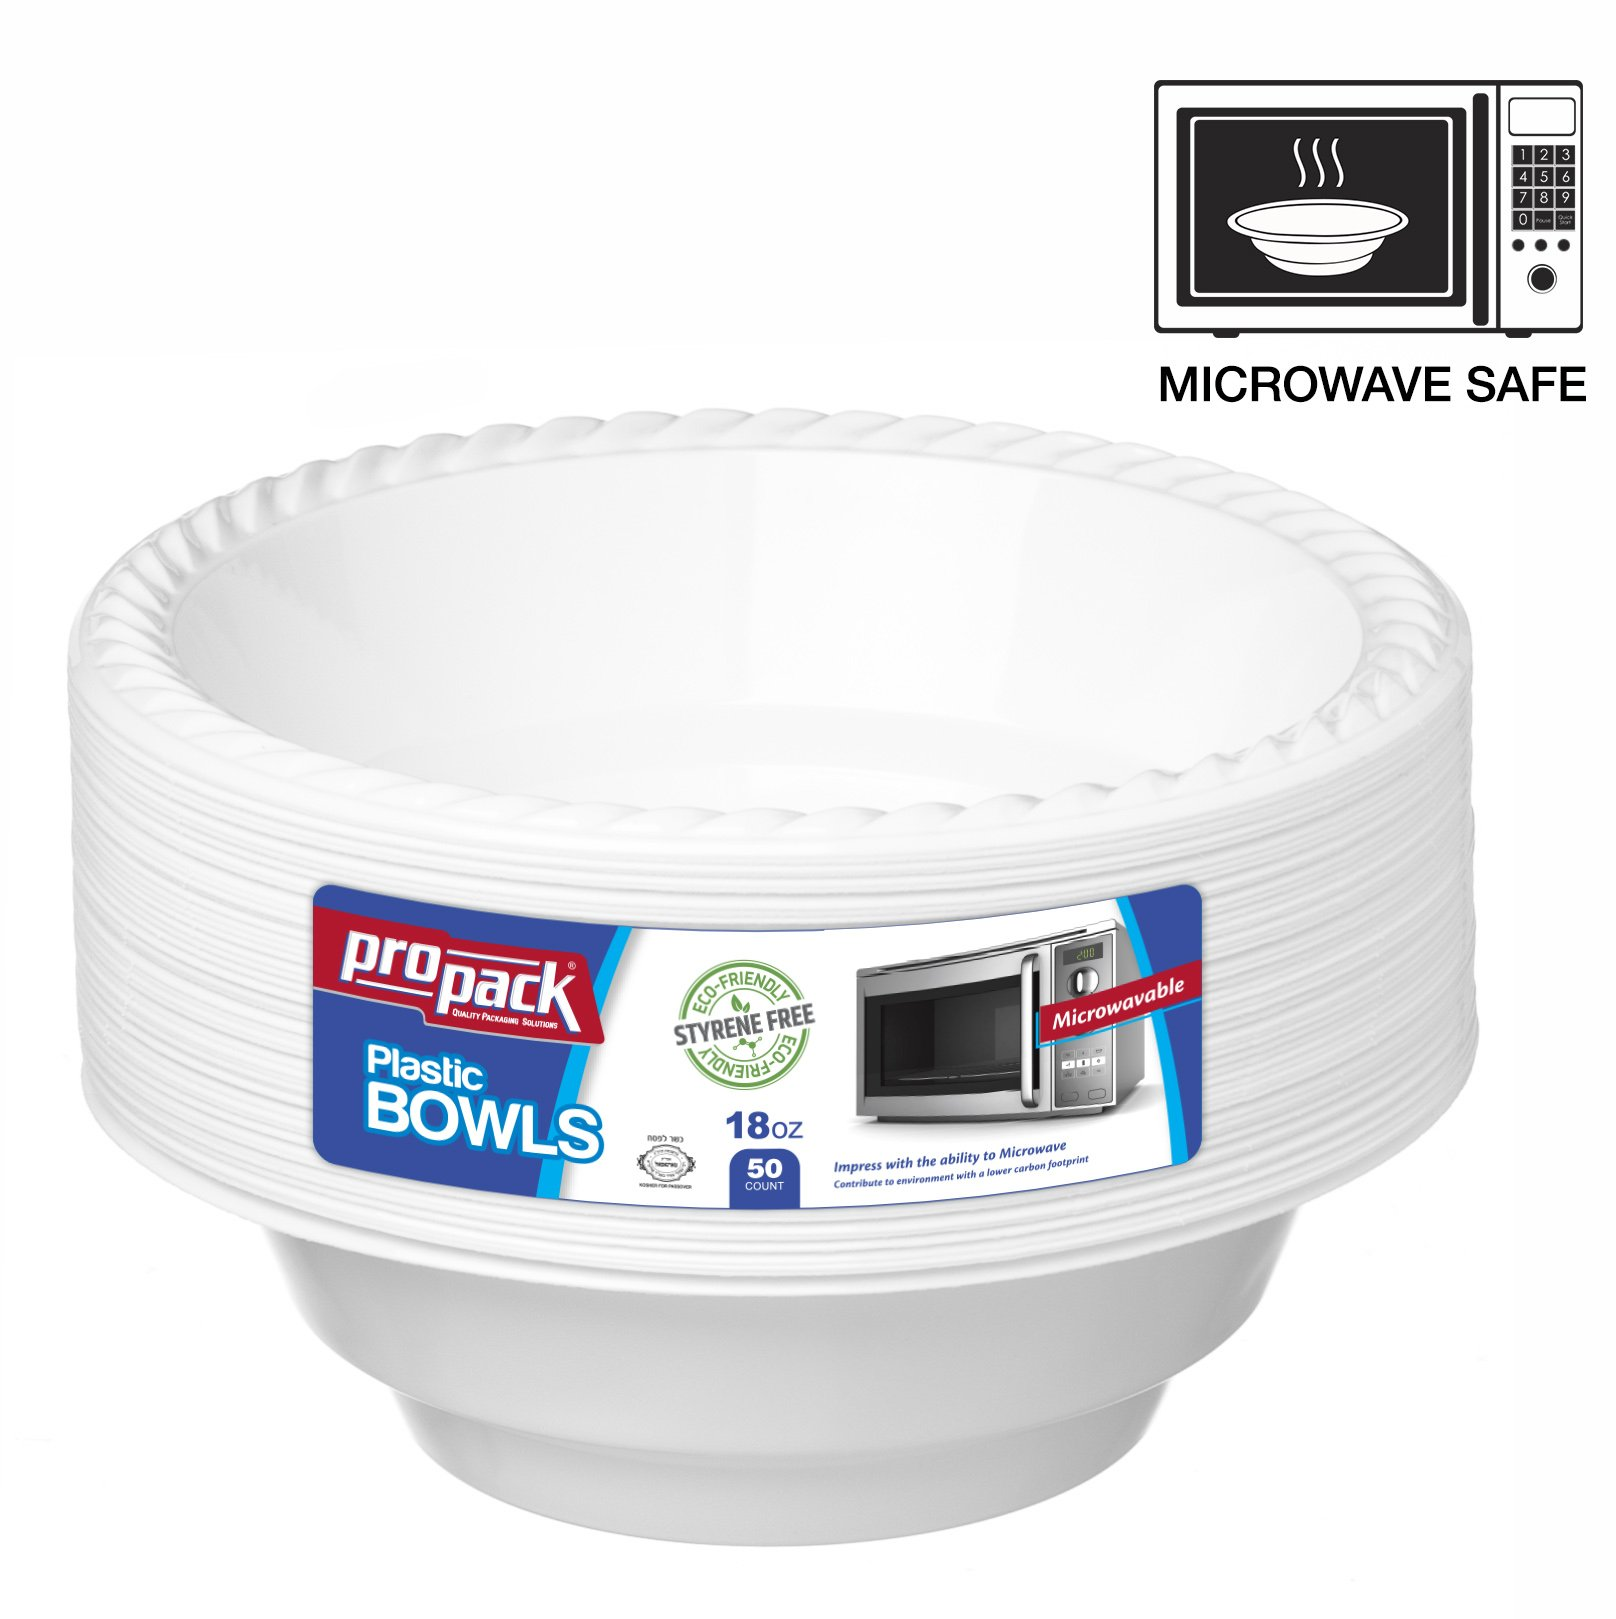 Propack 18 Ounce Disposable Bowls Microwave Safe 50 Count White Pack of 2 (100 Bowls Total) by Propack